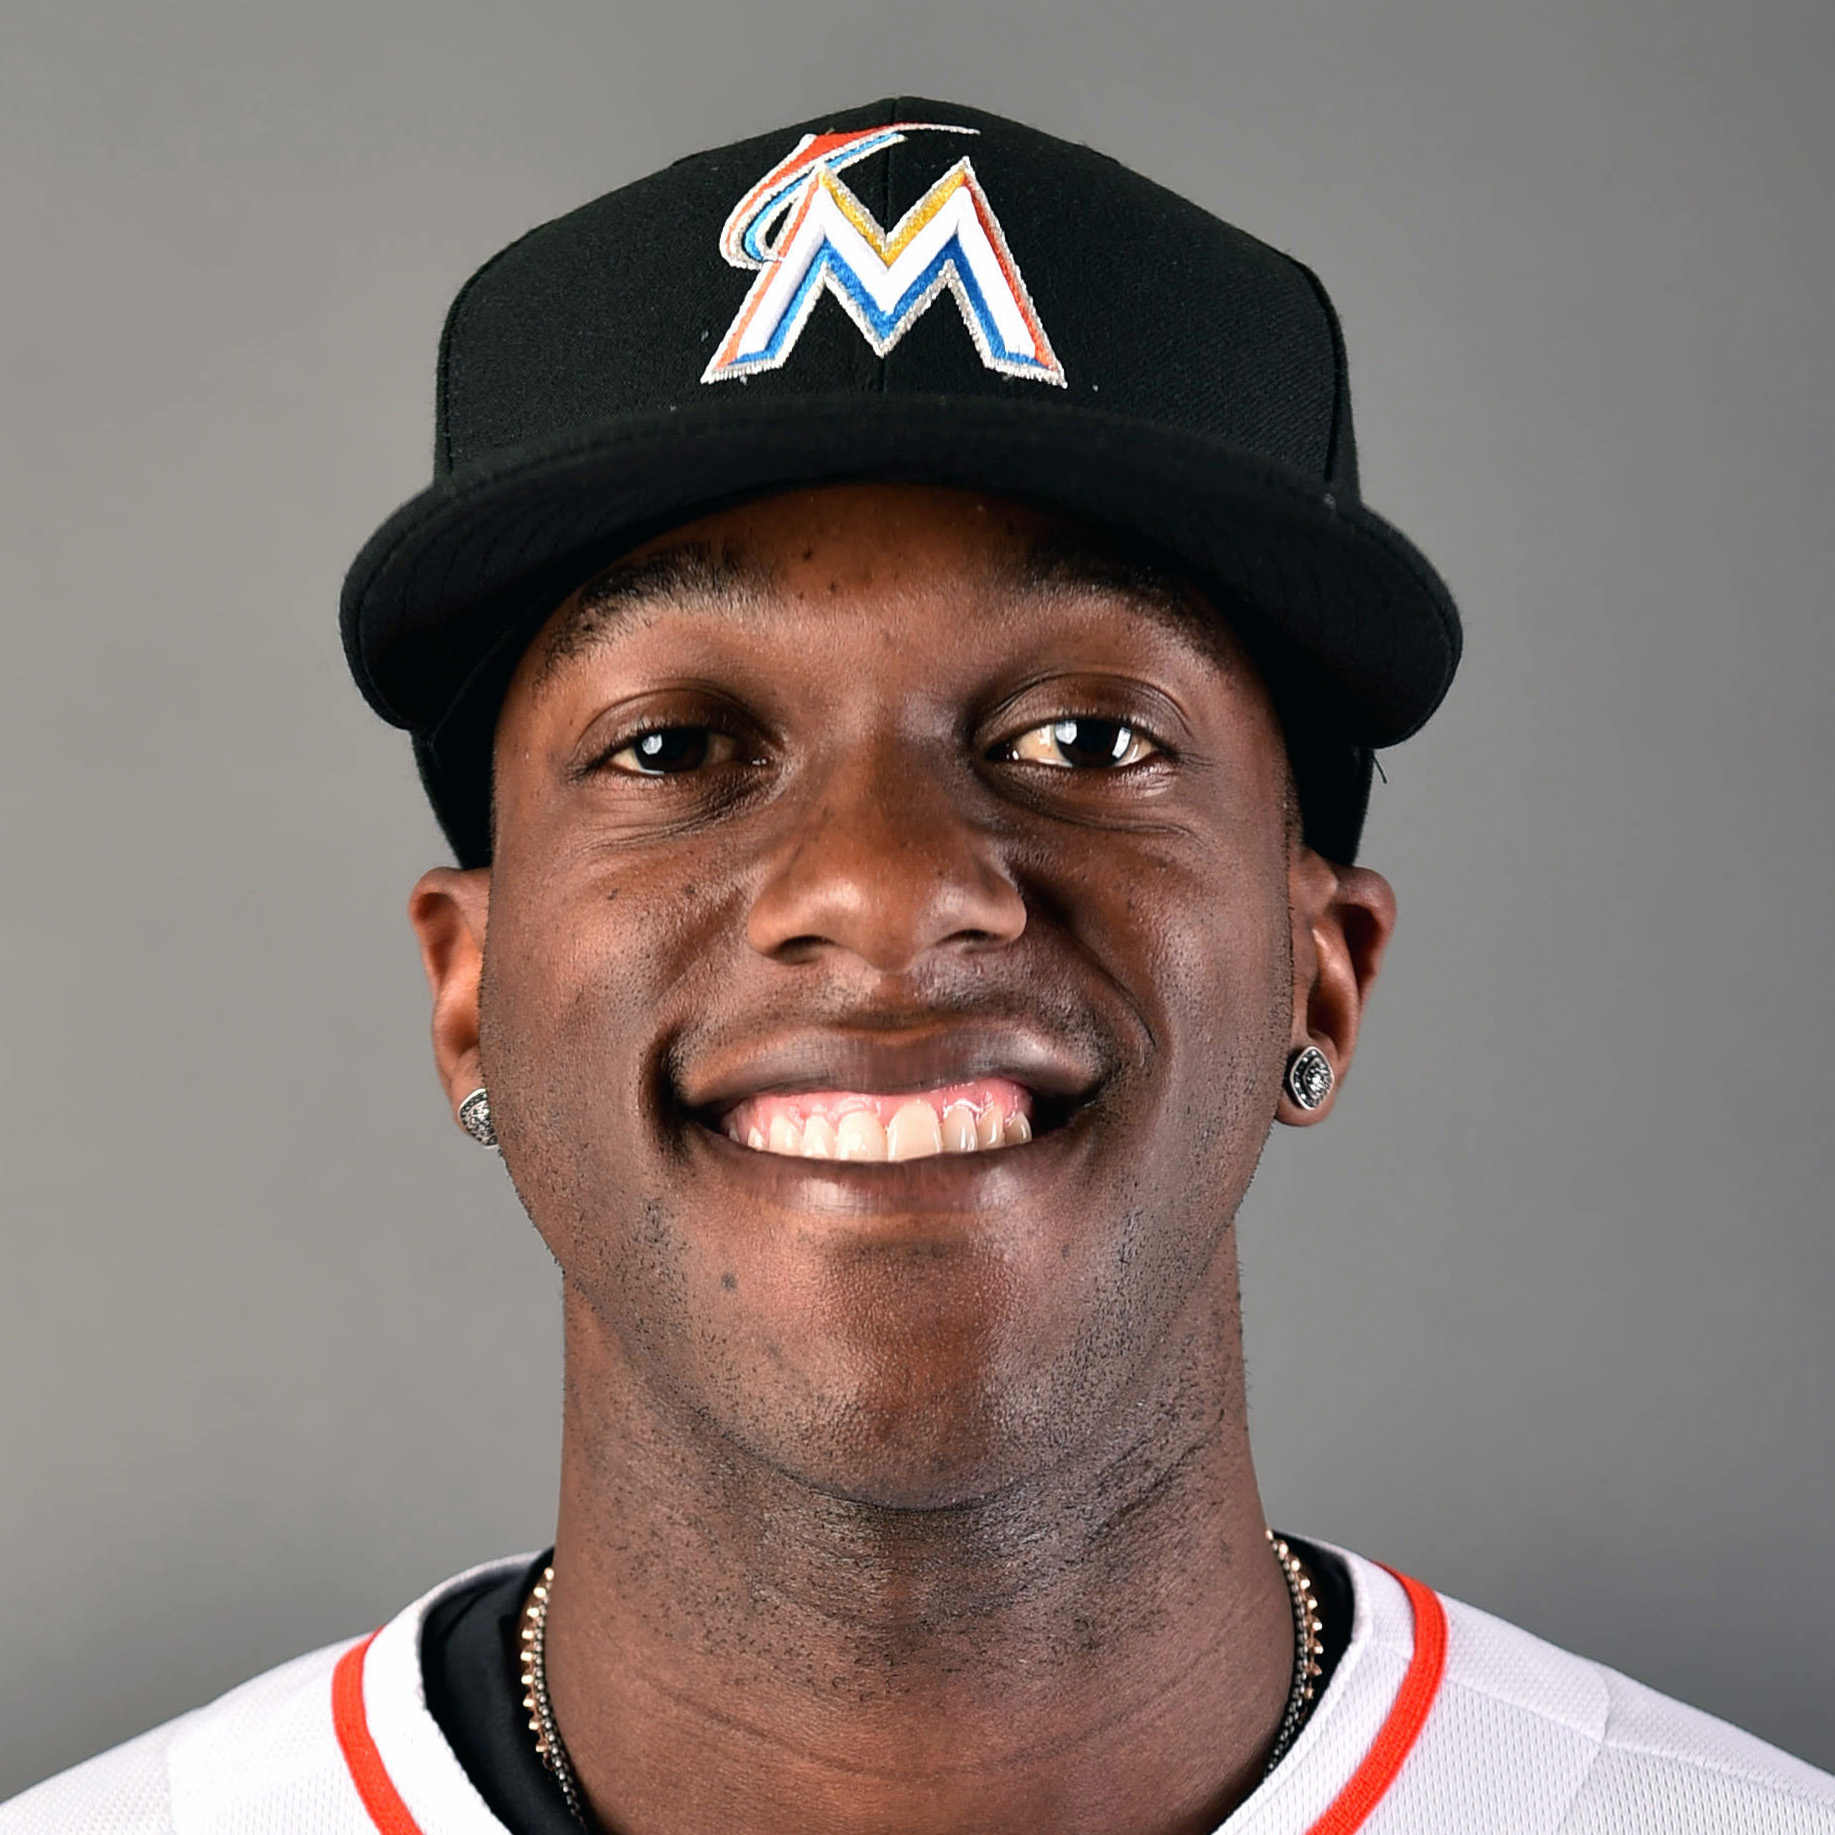 Cameron Maybin (R) Headshot